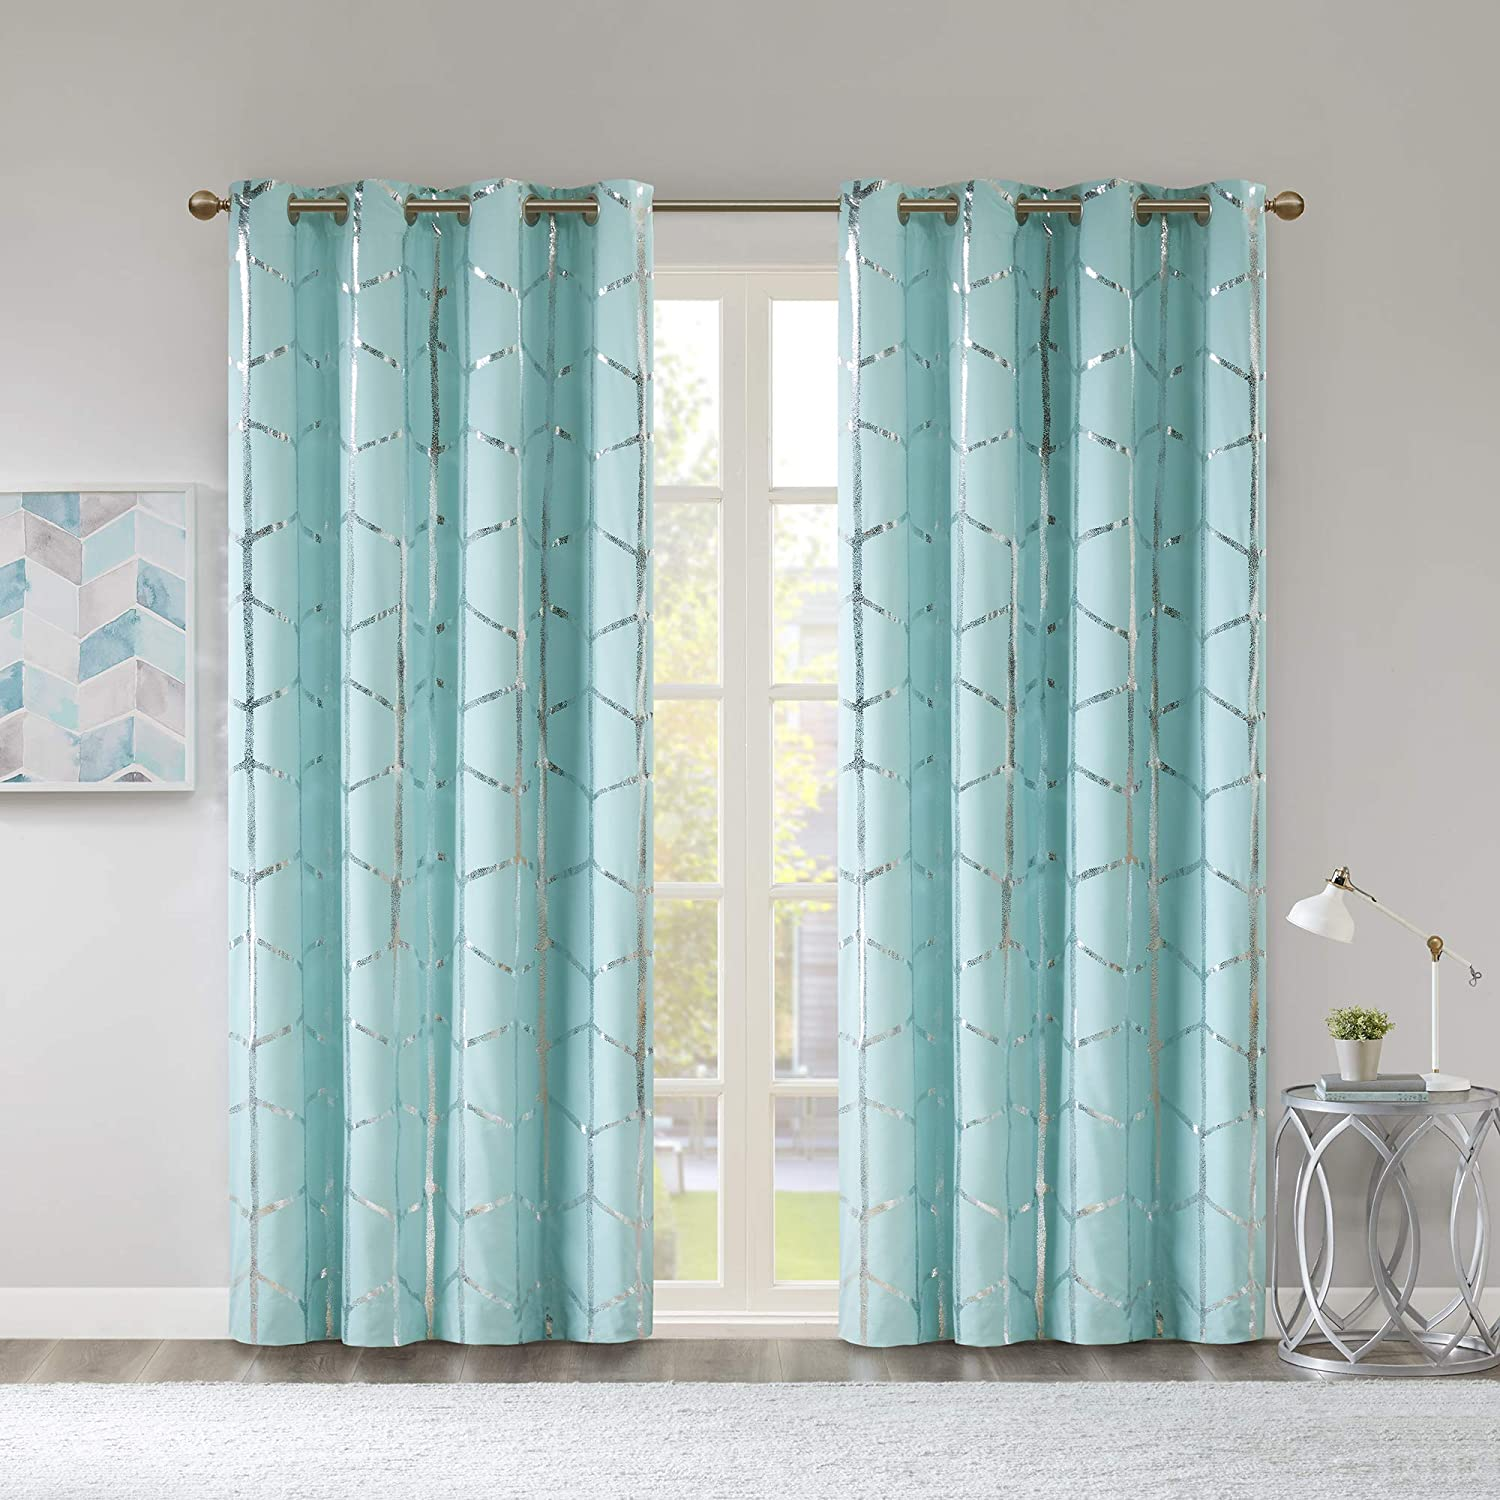 Intelligent Design Raina Total Blackout Metallic Print Grommet Top Window Curtains Panel Thermal Insulated Light Blocking Drape for Bedroom Living Room and Dorm, 50x63, Aqua/Silver